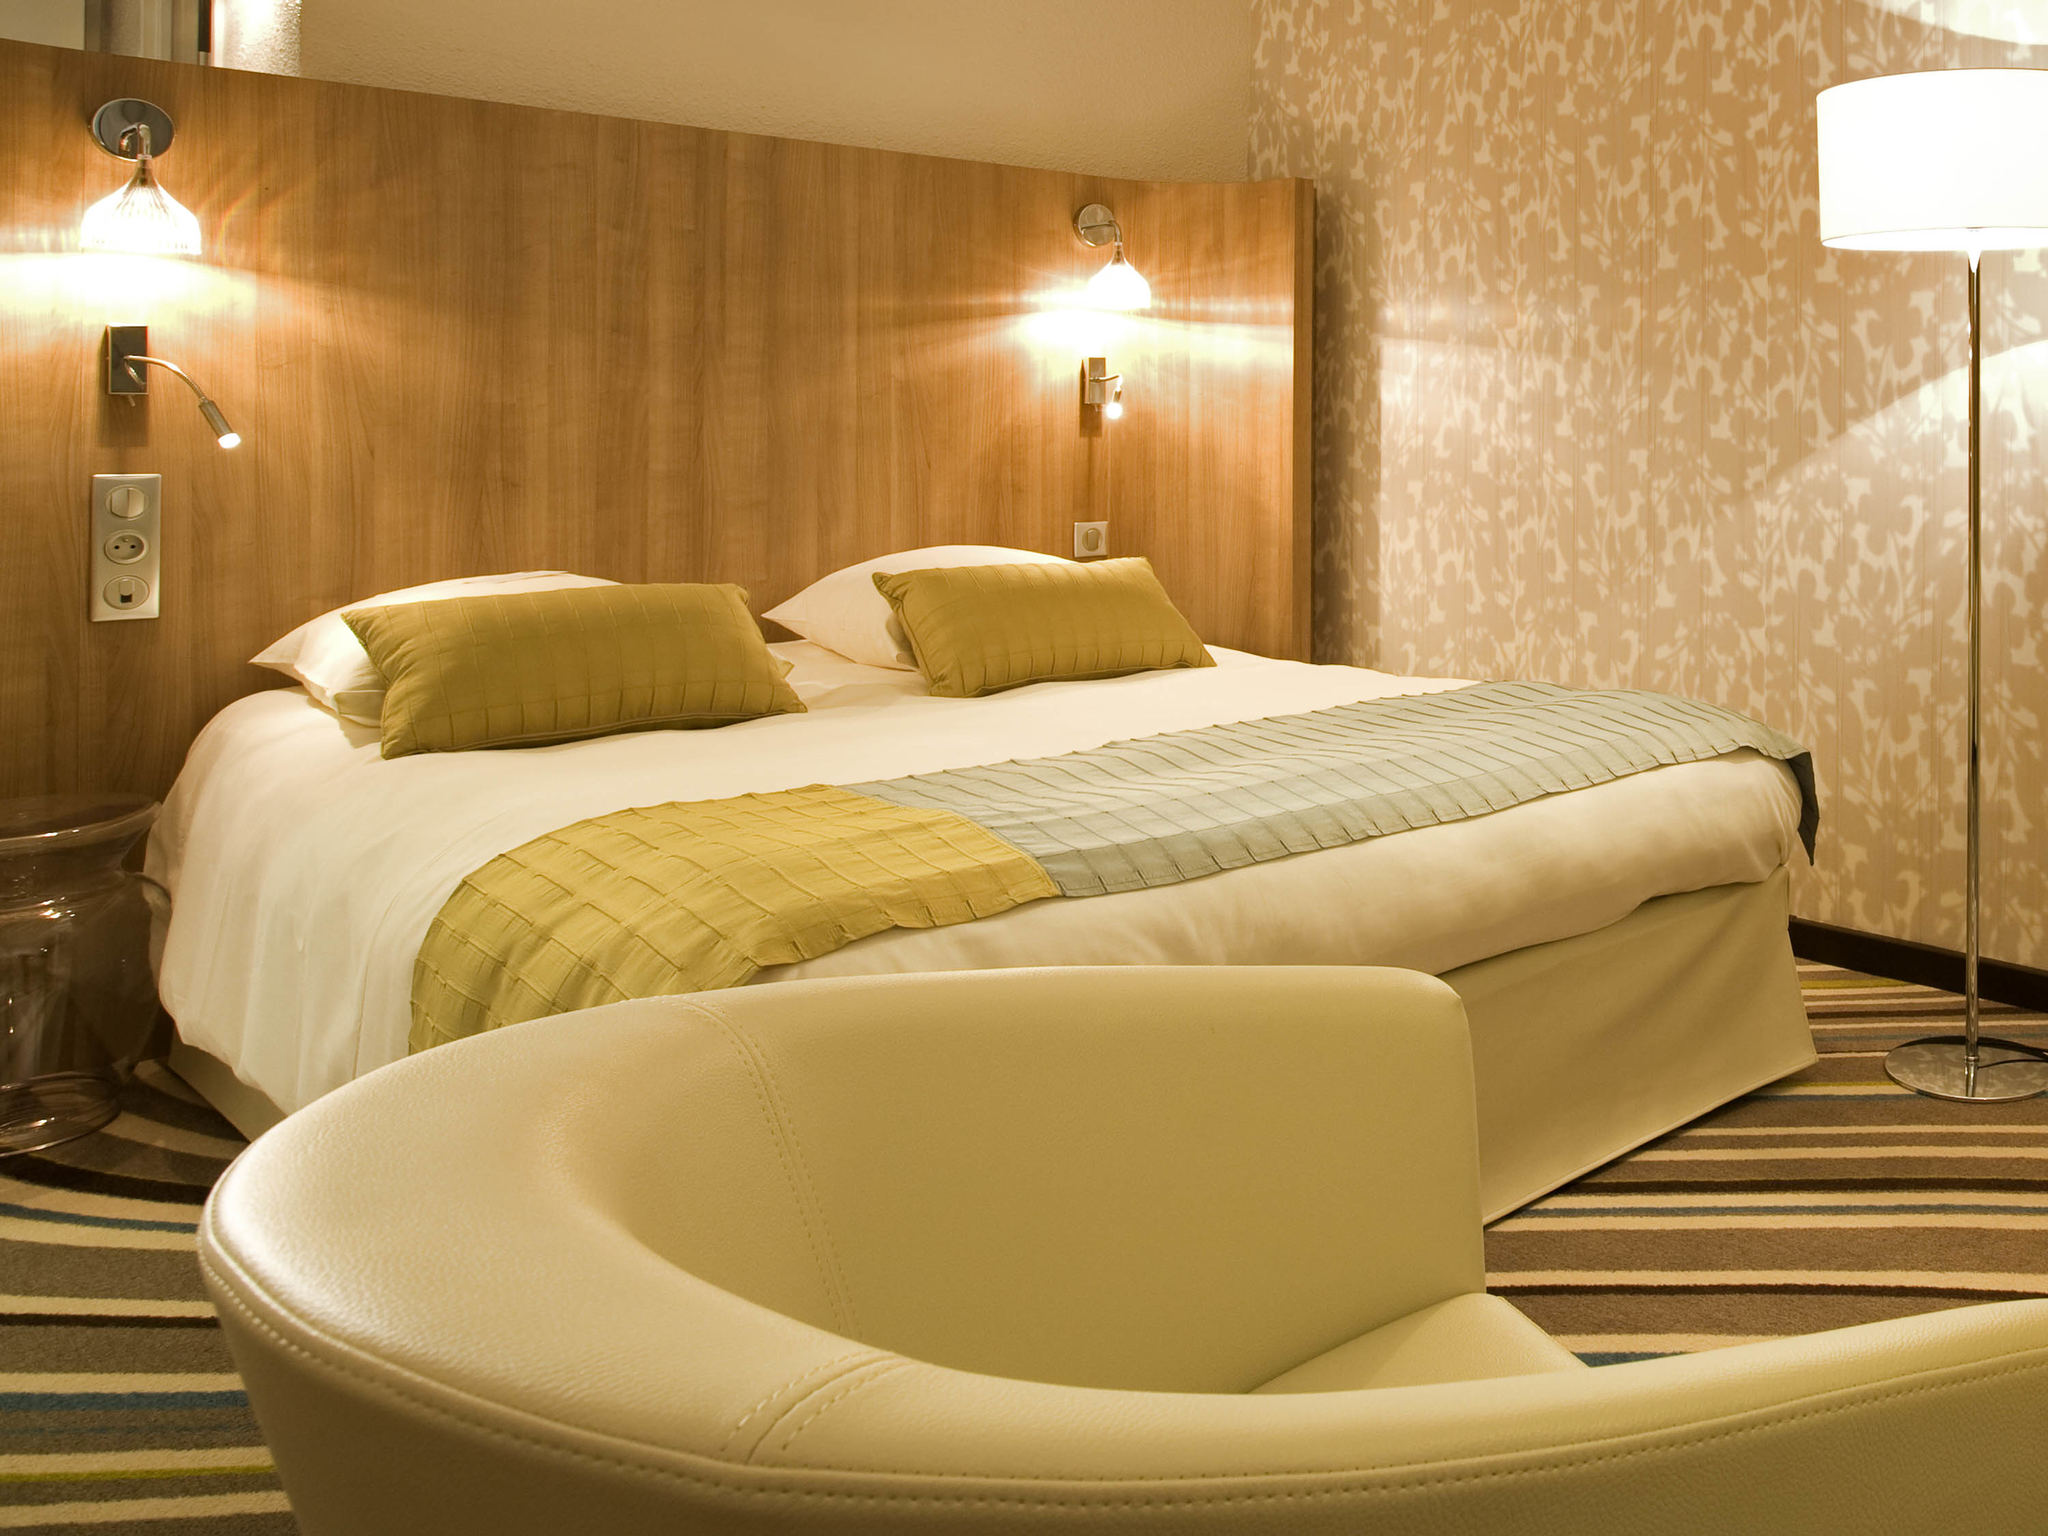 Hotel – Hotel Mercure Angers Centre